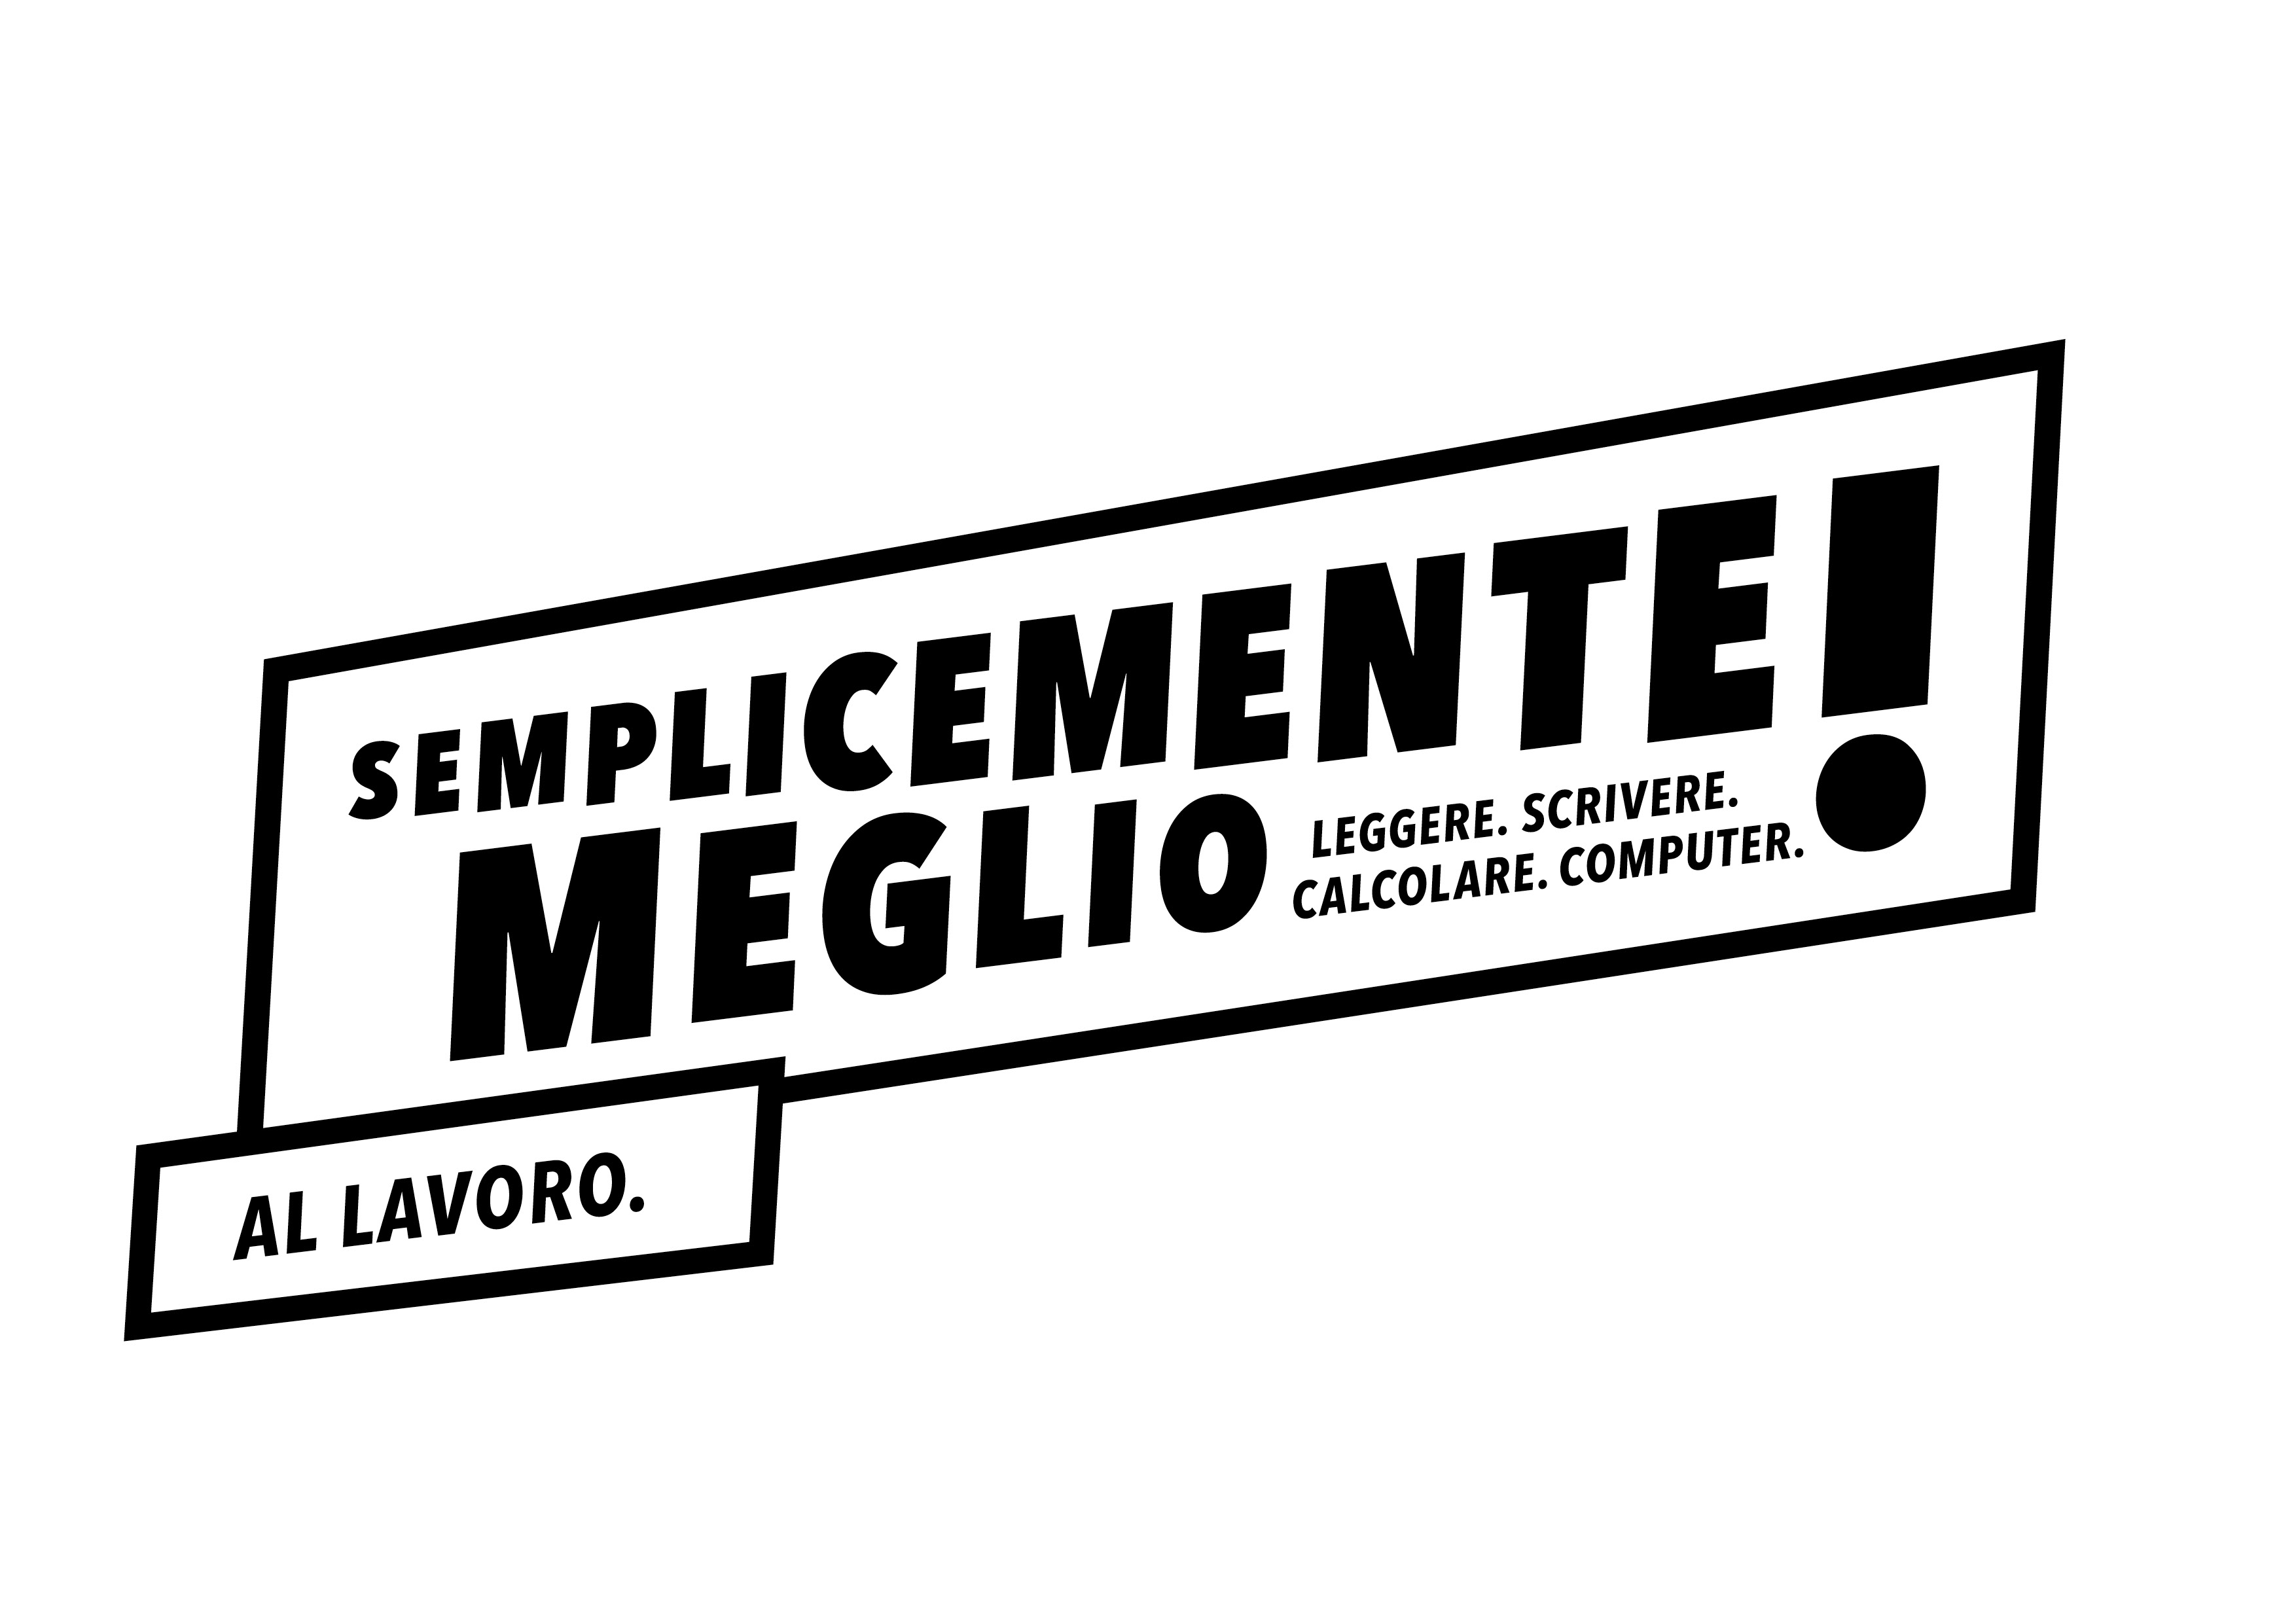 Logo competenze di base nero